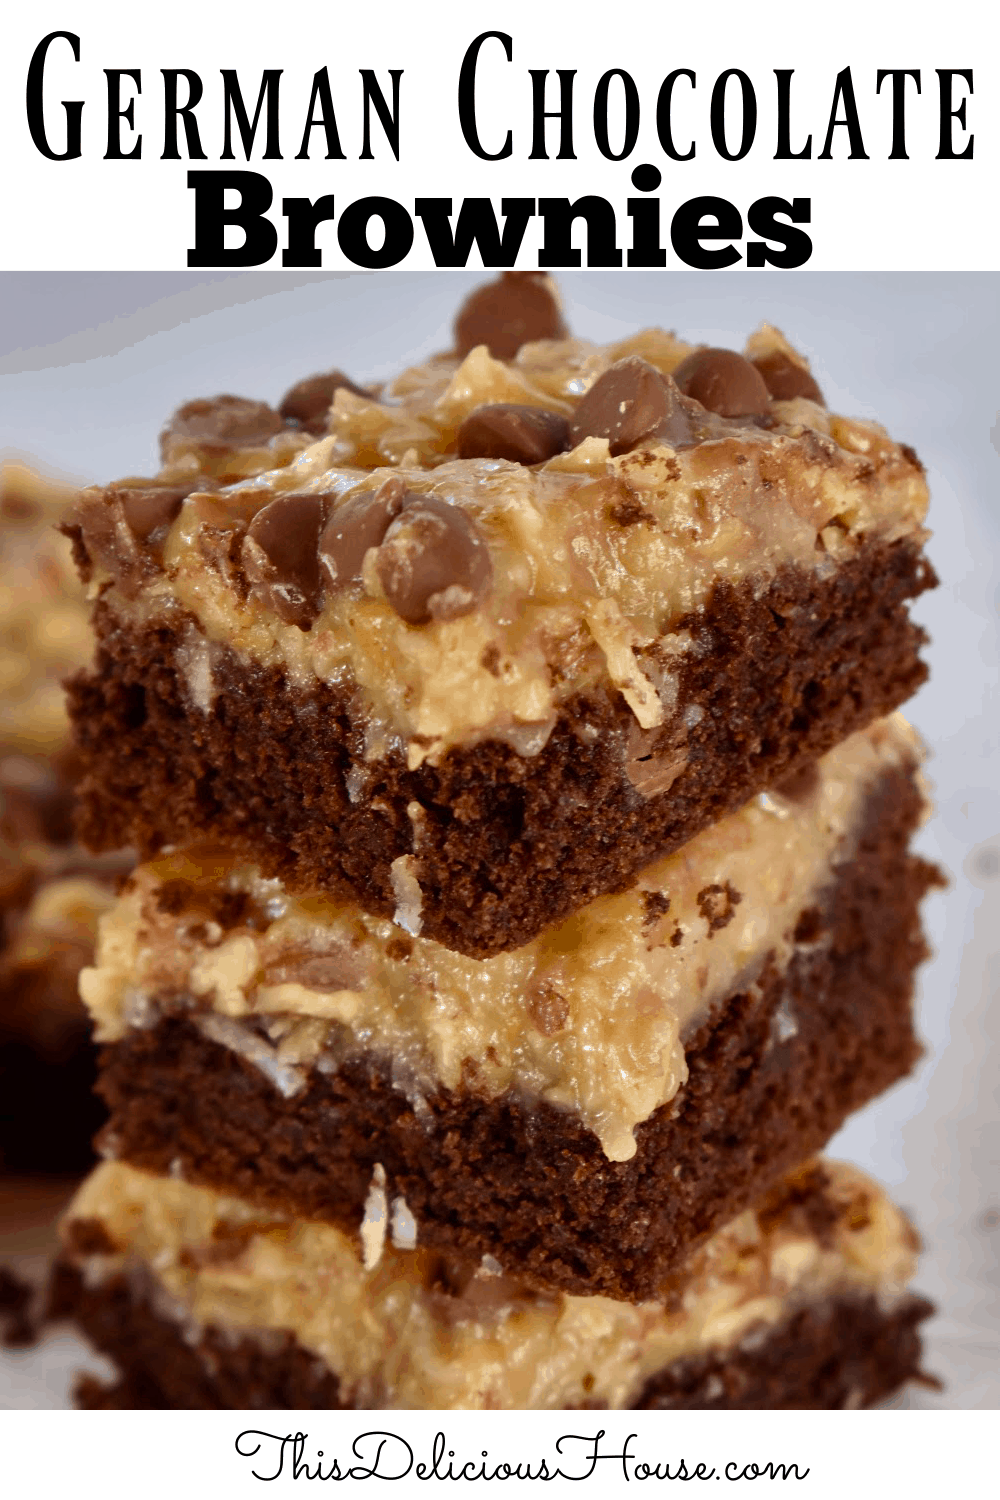 German Chocolate Brownies stacked on each other.